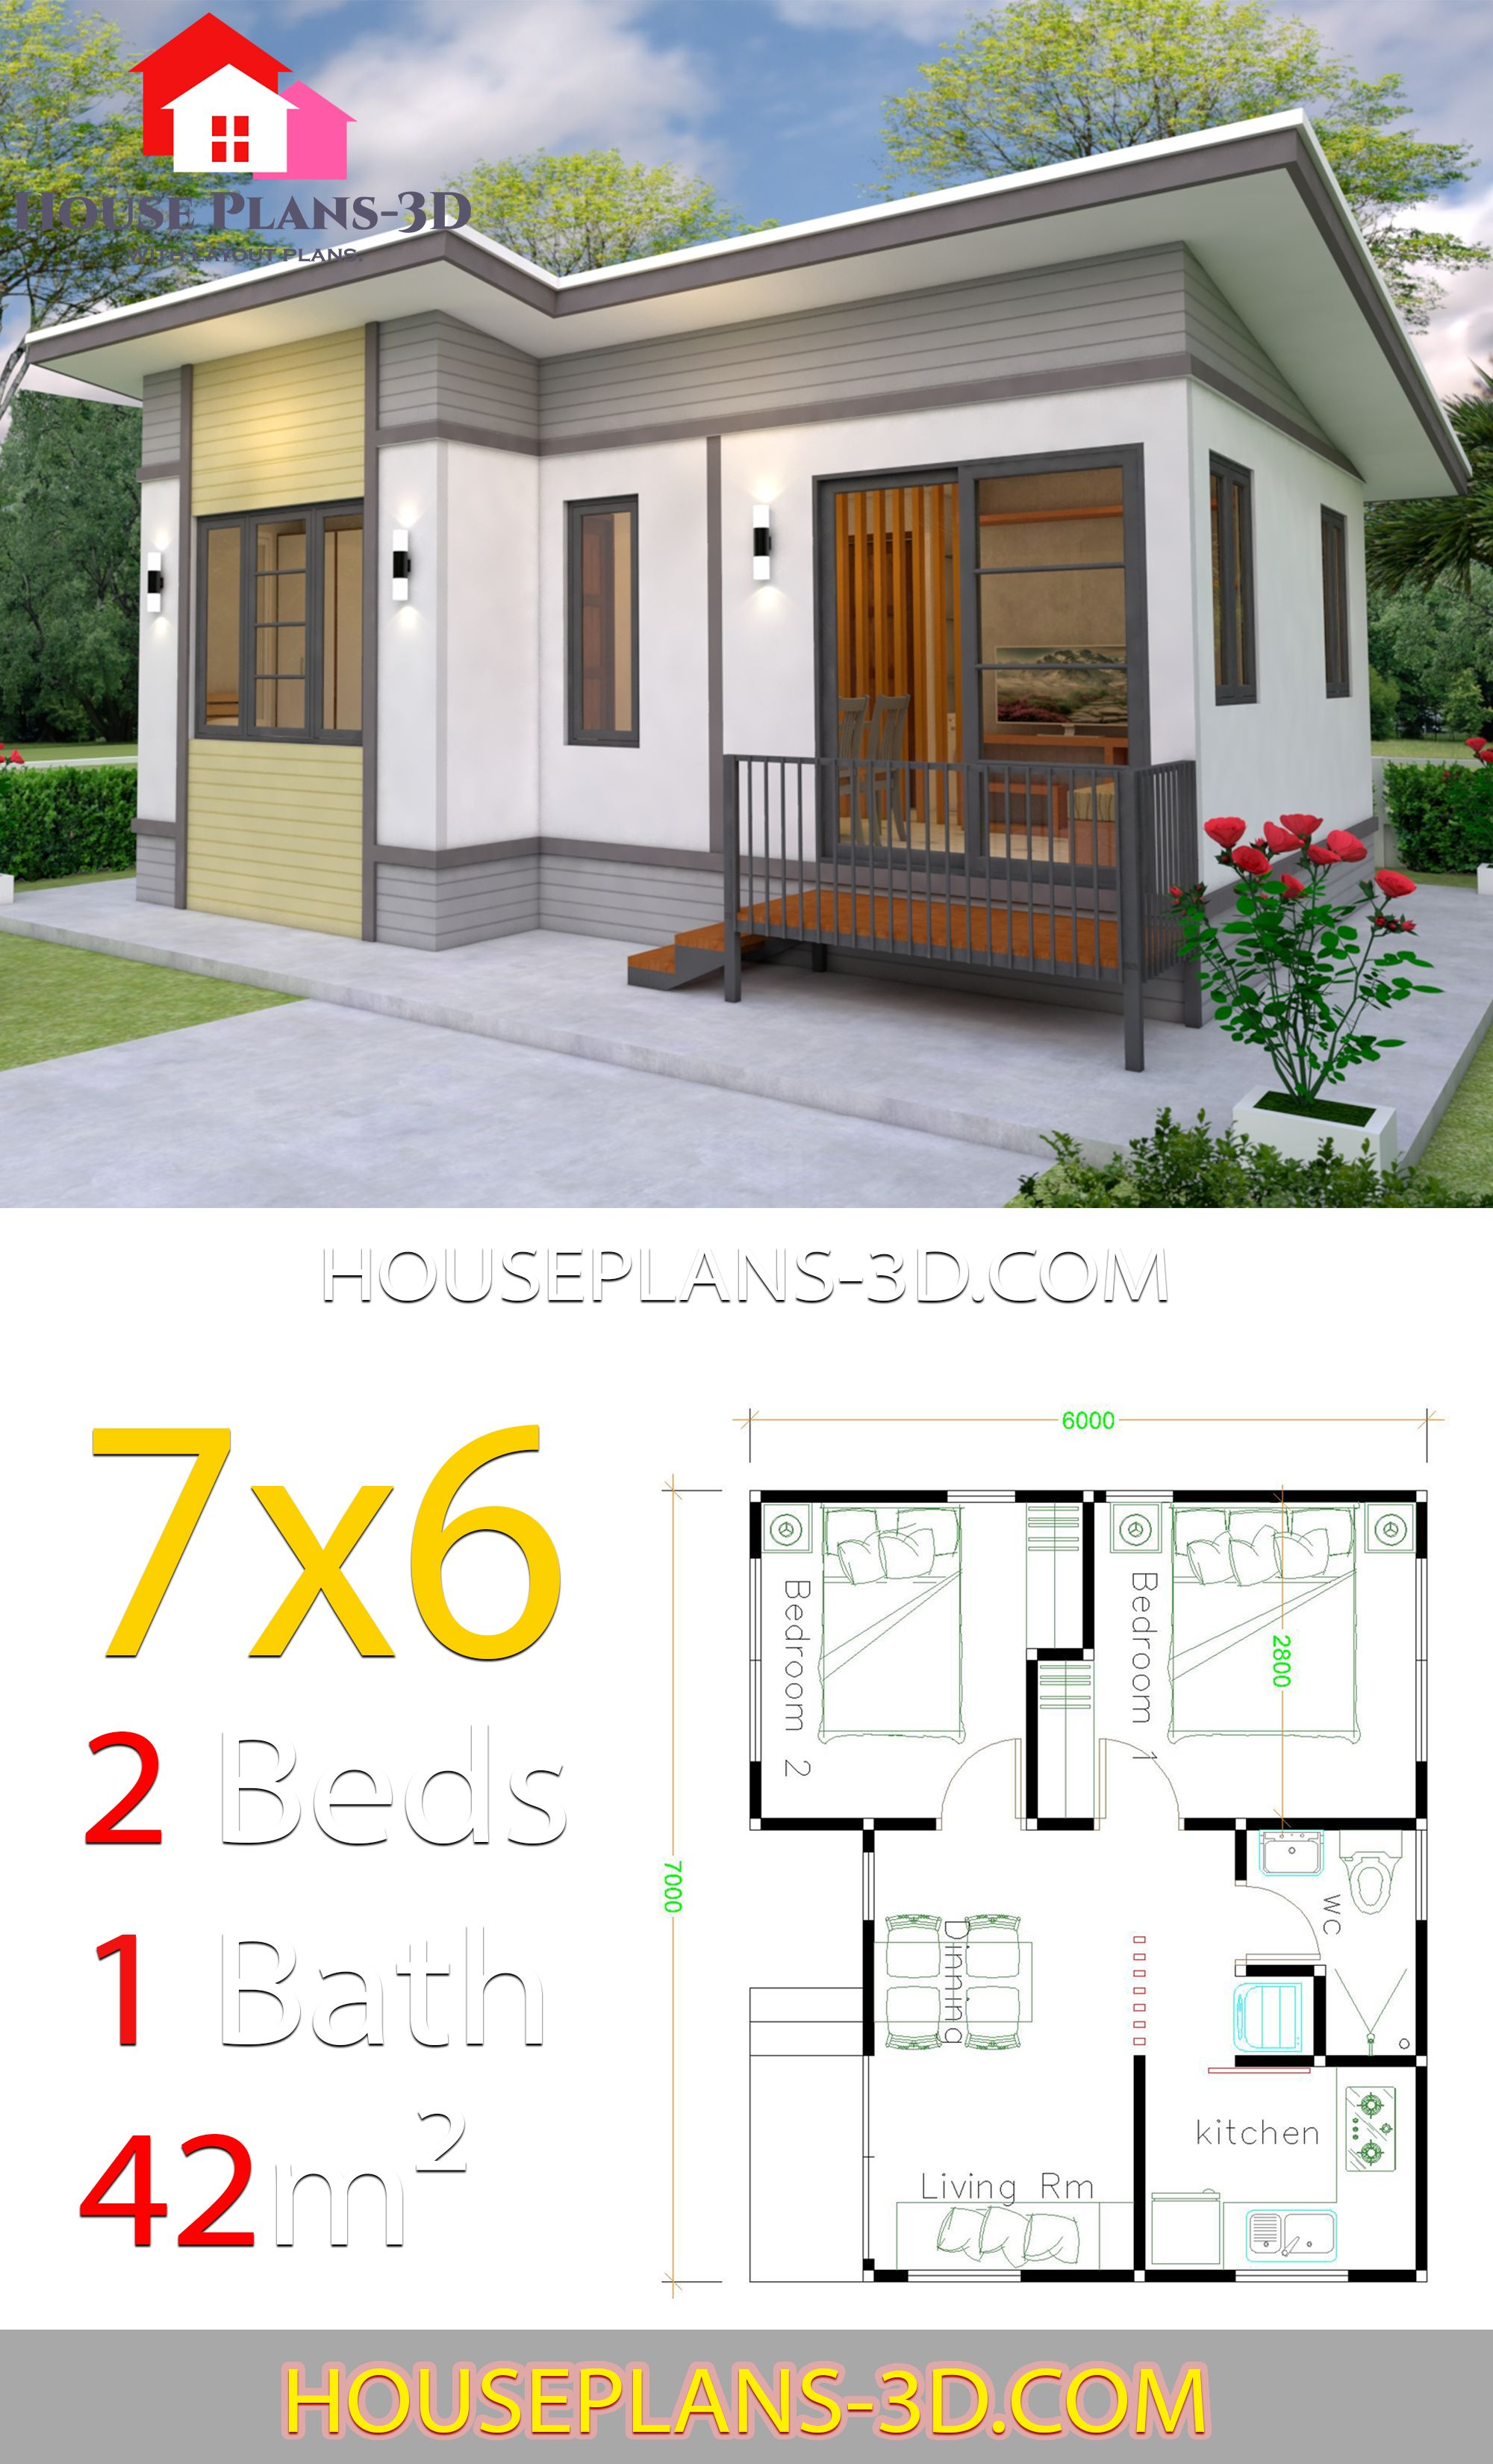 Small House Plans 7x6 With 2 Bedrooms House Plans Small House Floor Plans Simple House Design